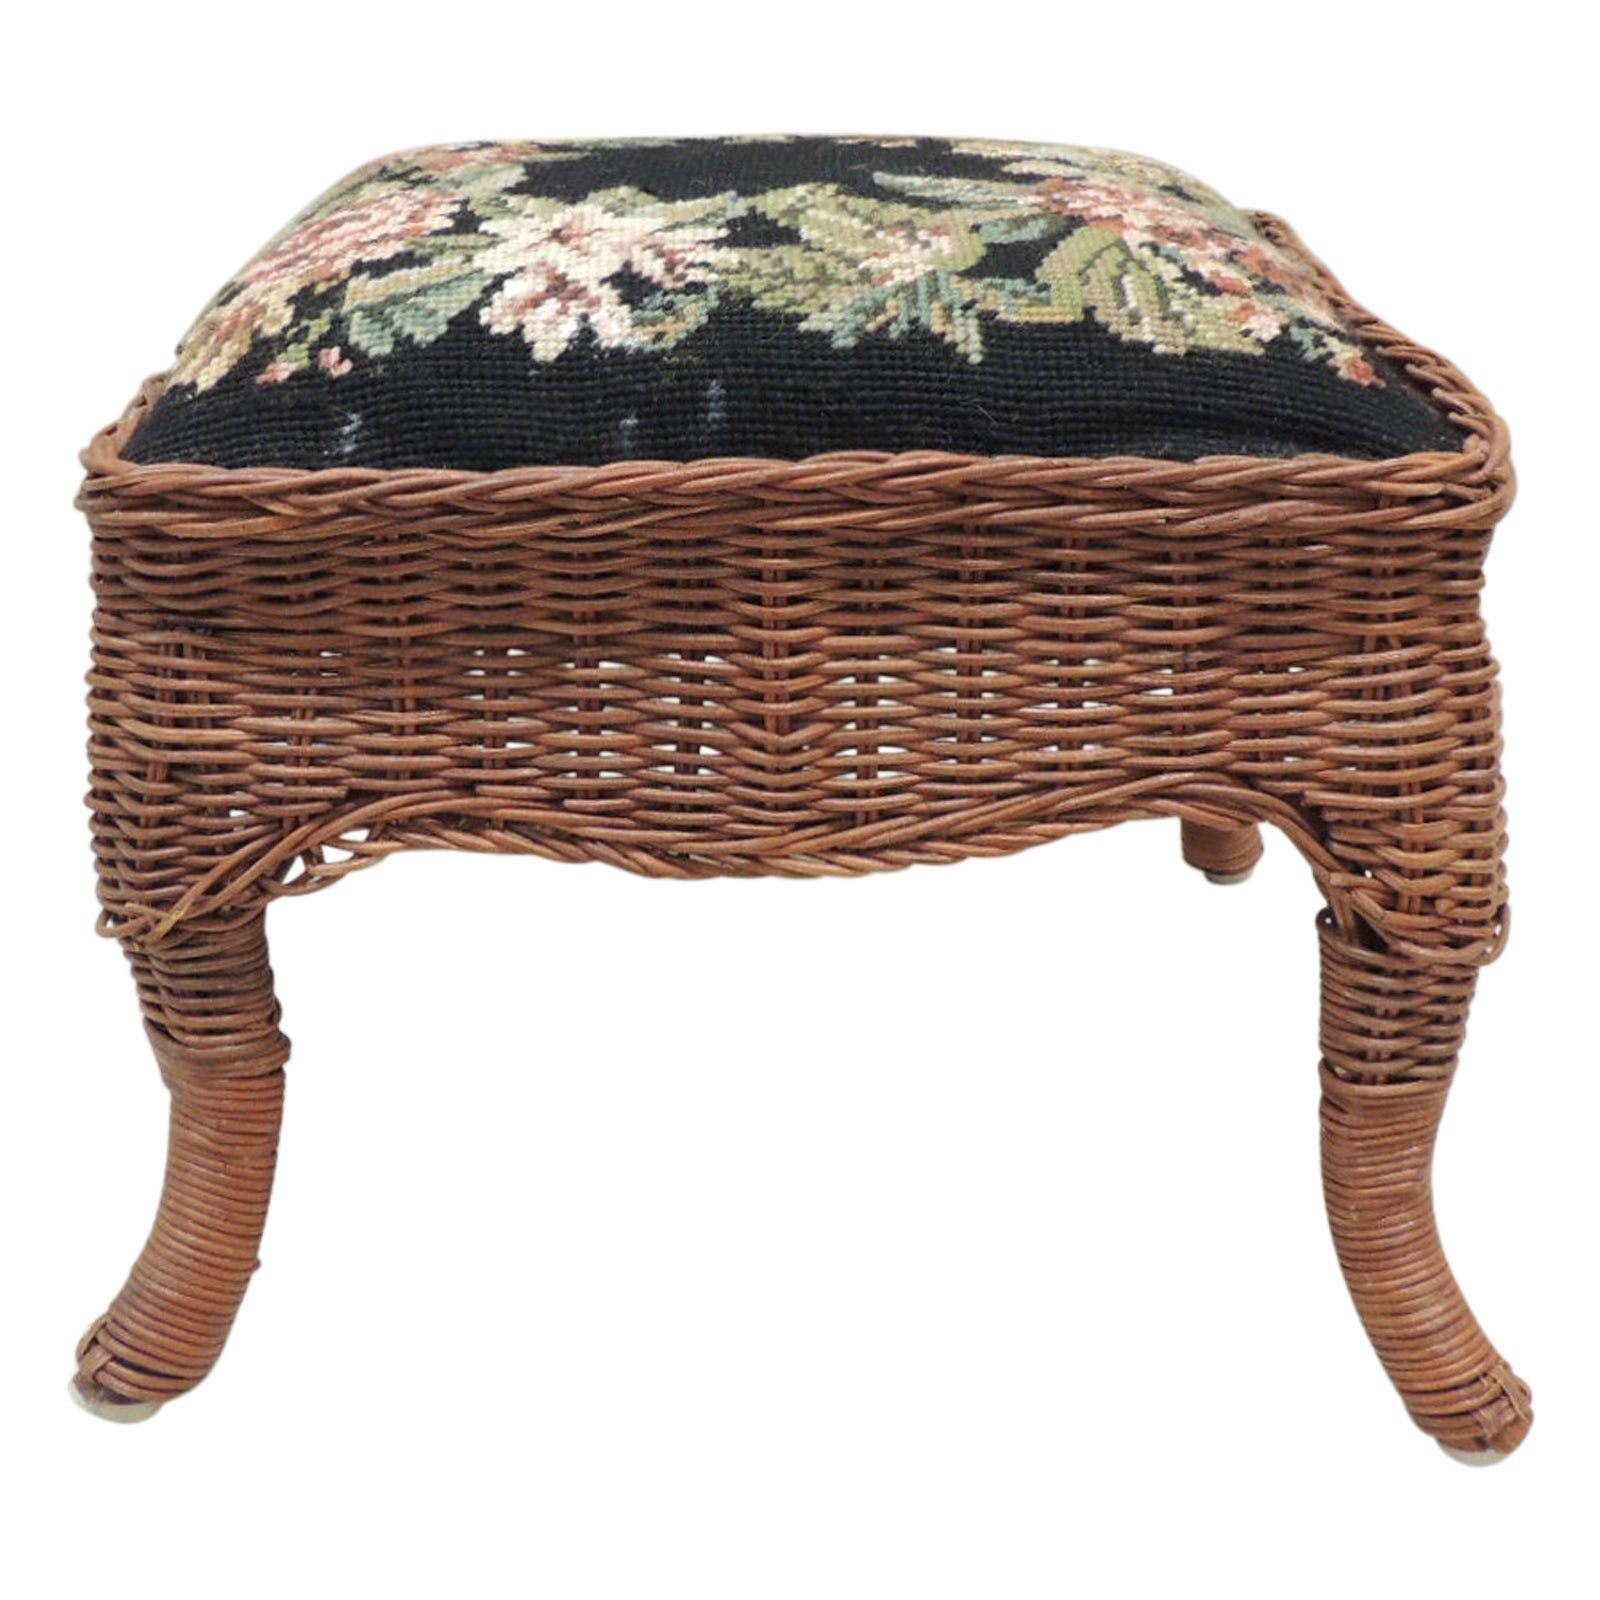 Vintage Footstool with Antique Style Needlepoint Tapestry